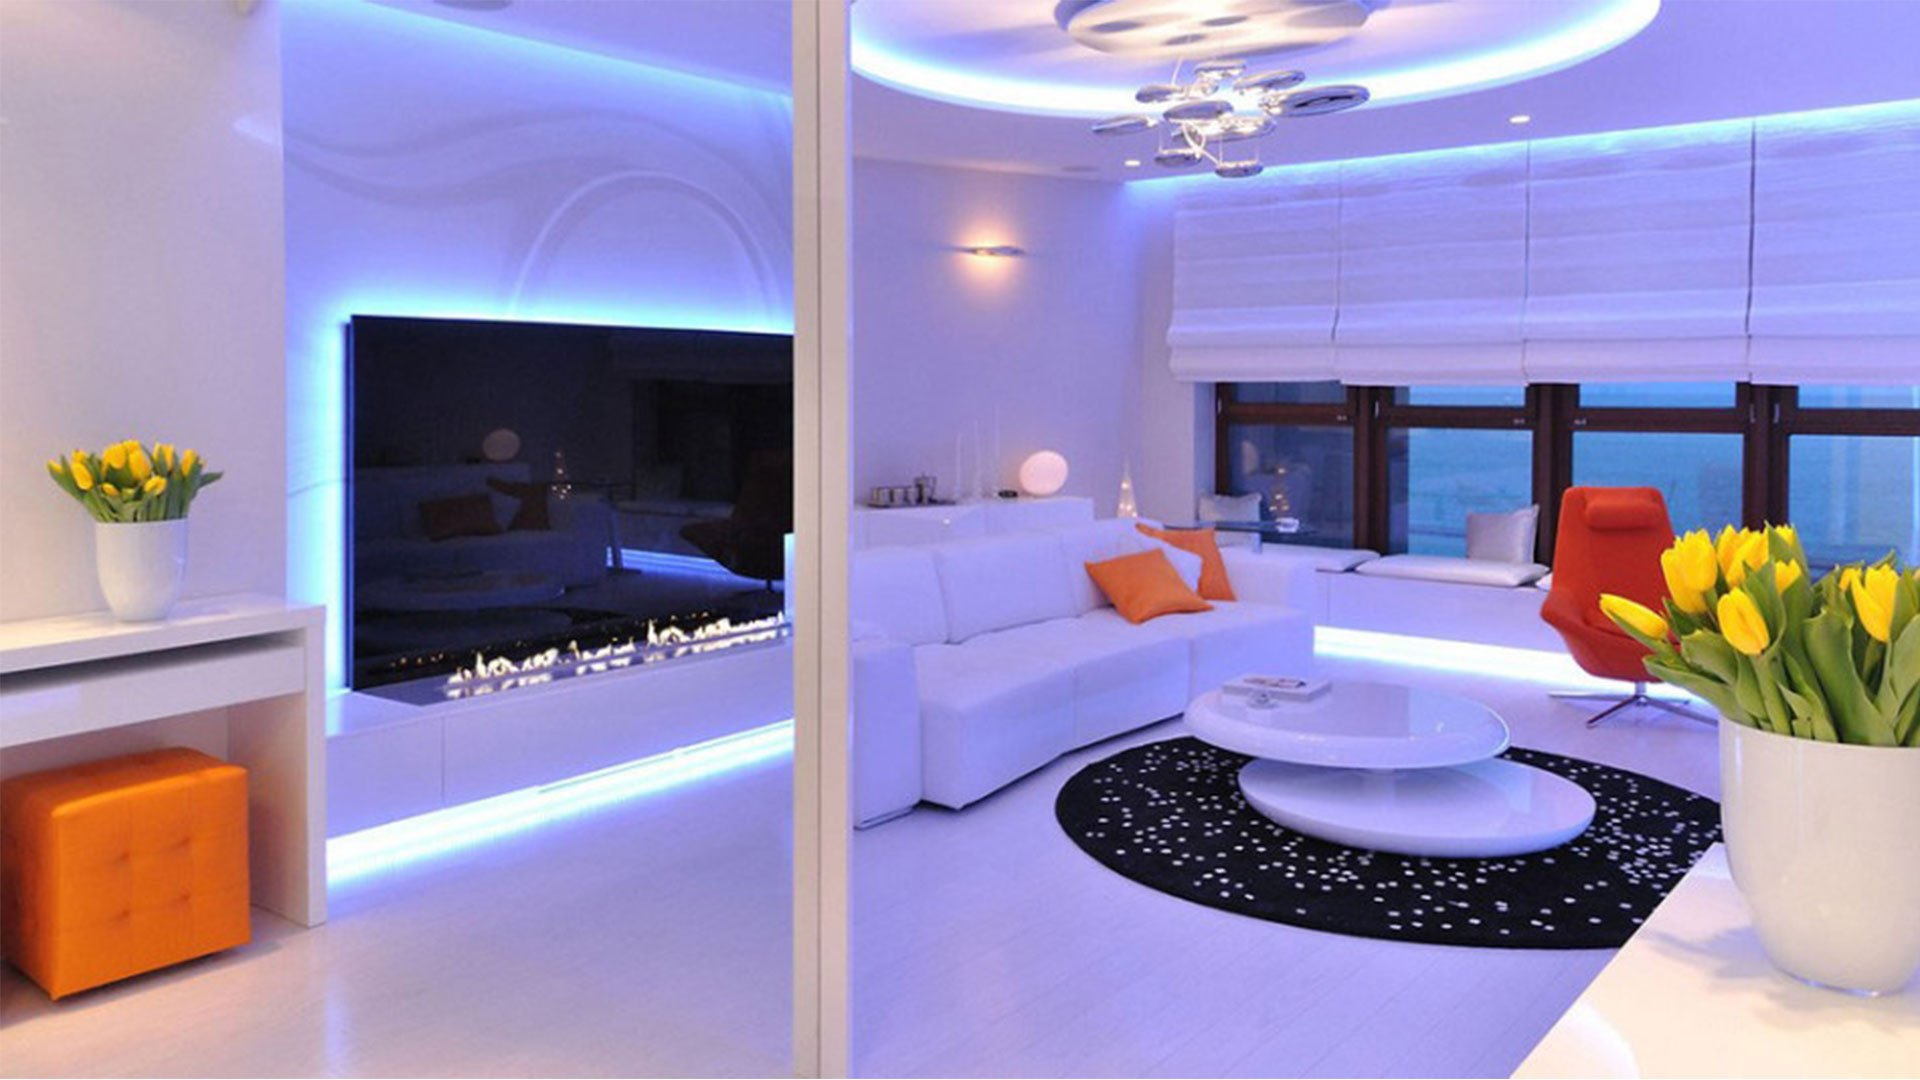 Bon Family Living Room Futuristic Technology Interior Design